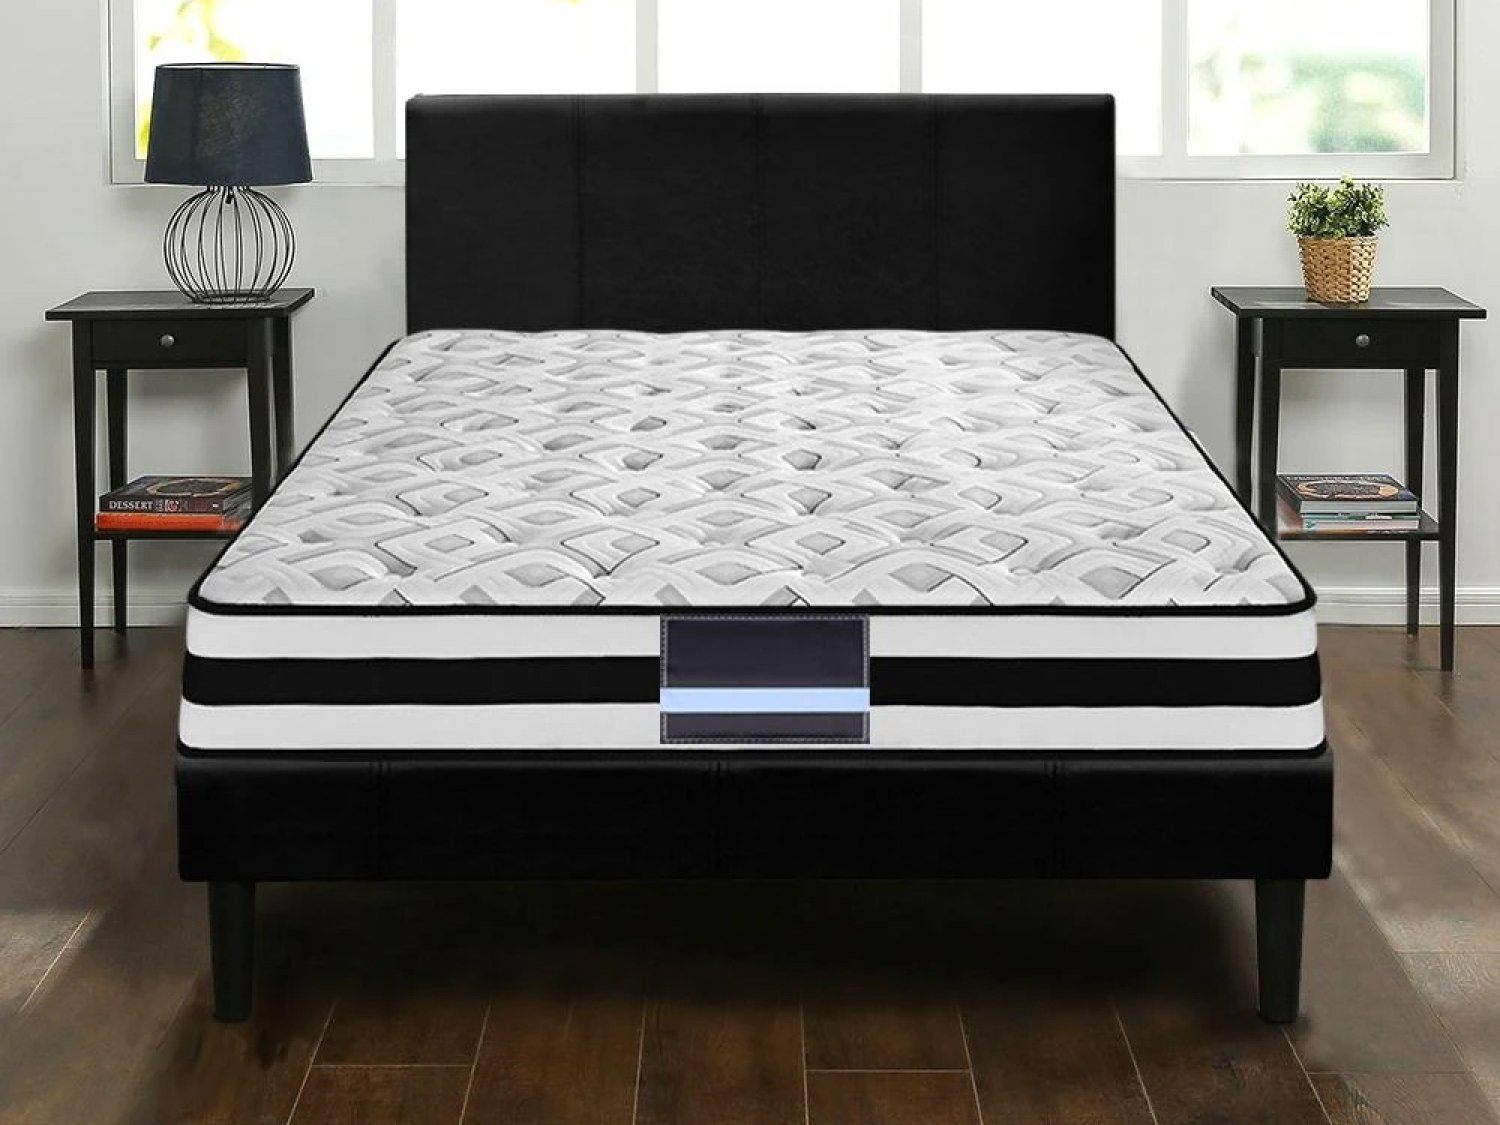 Foam Spring Breathable Mattress